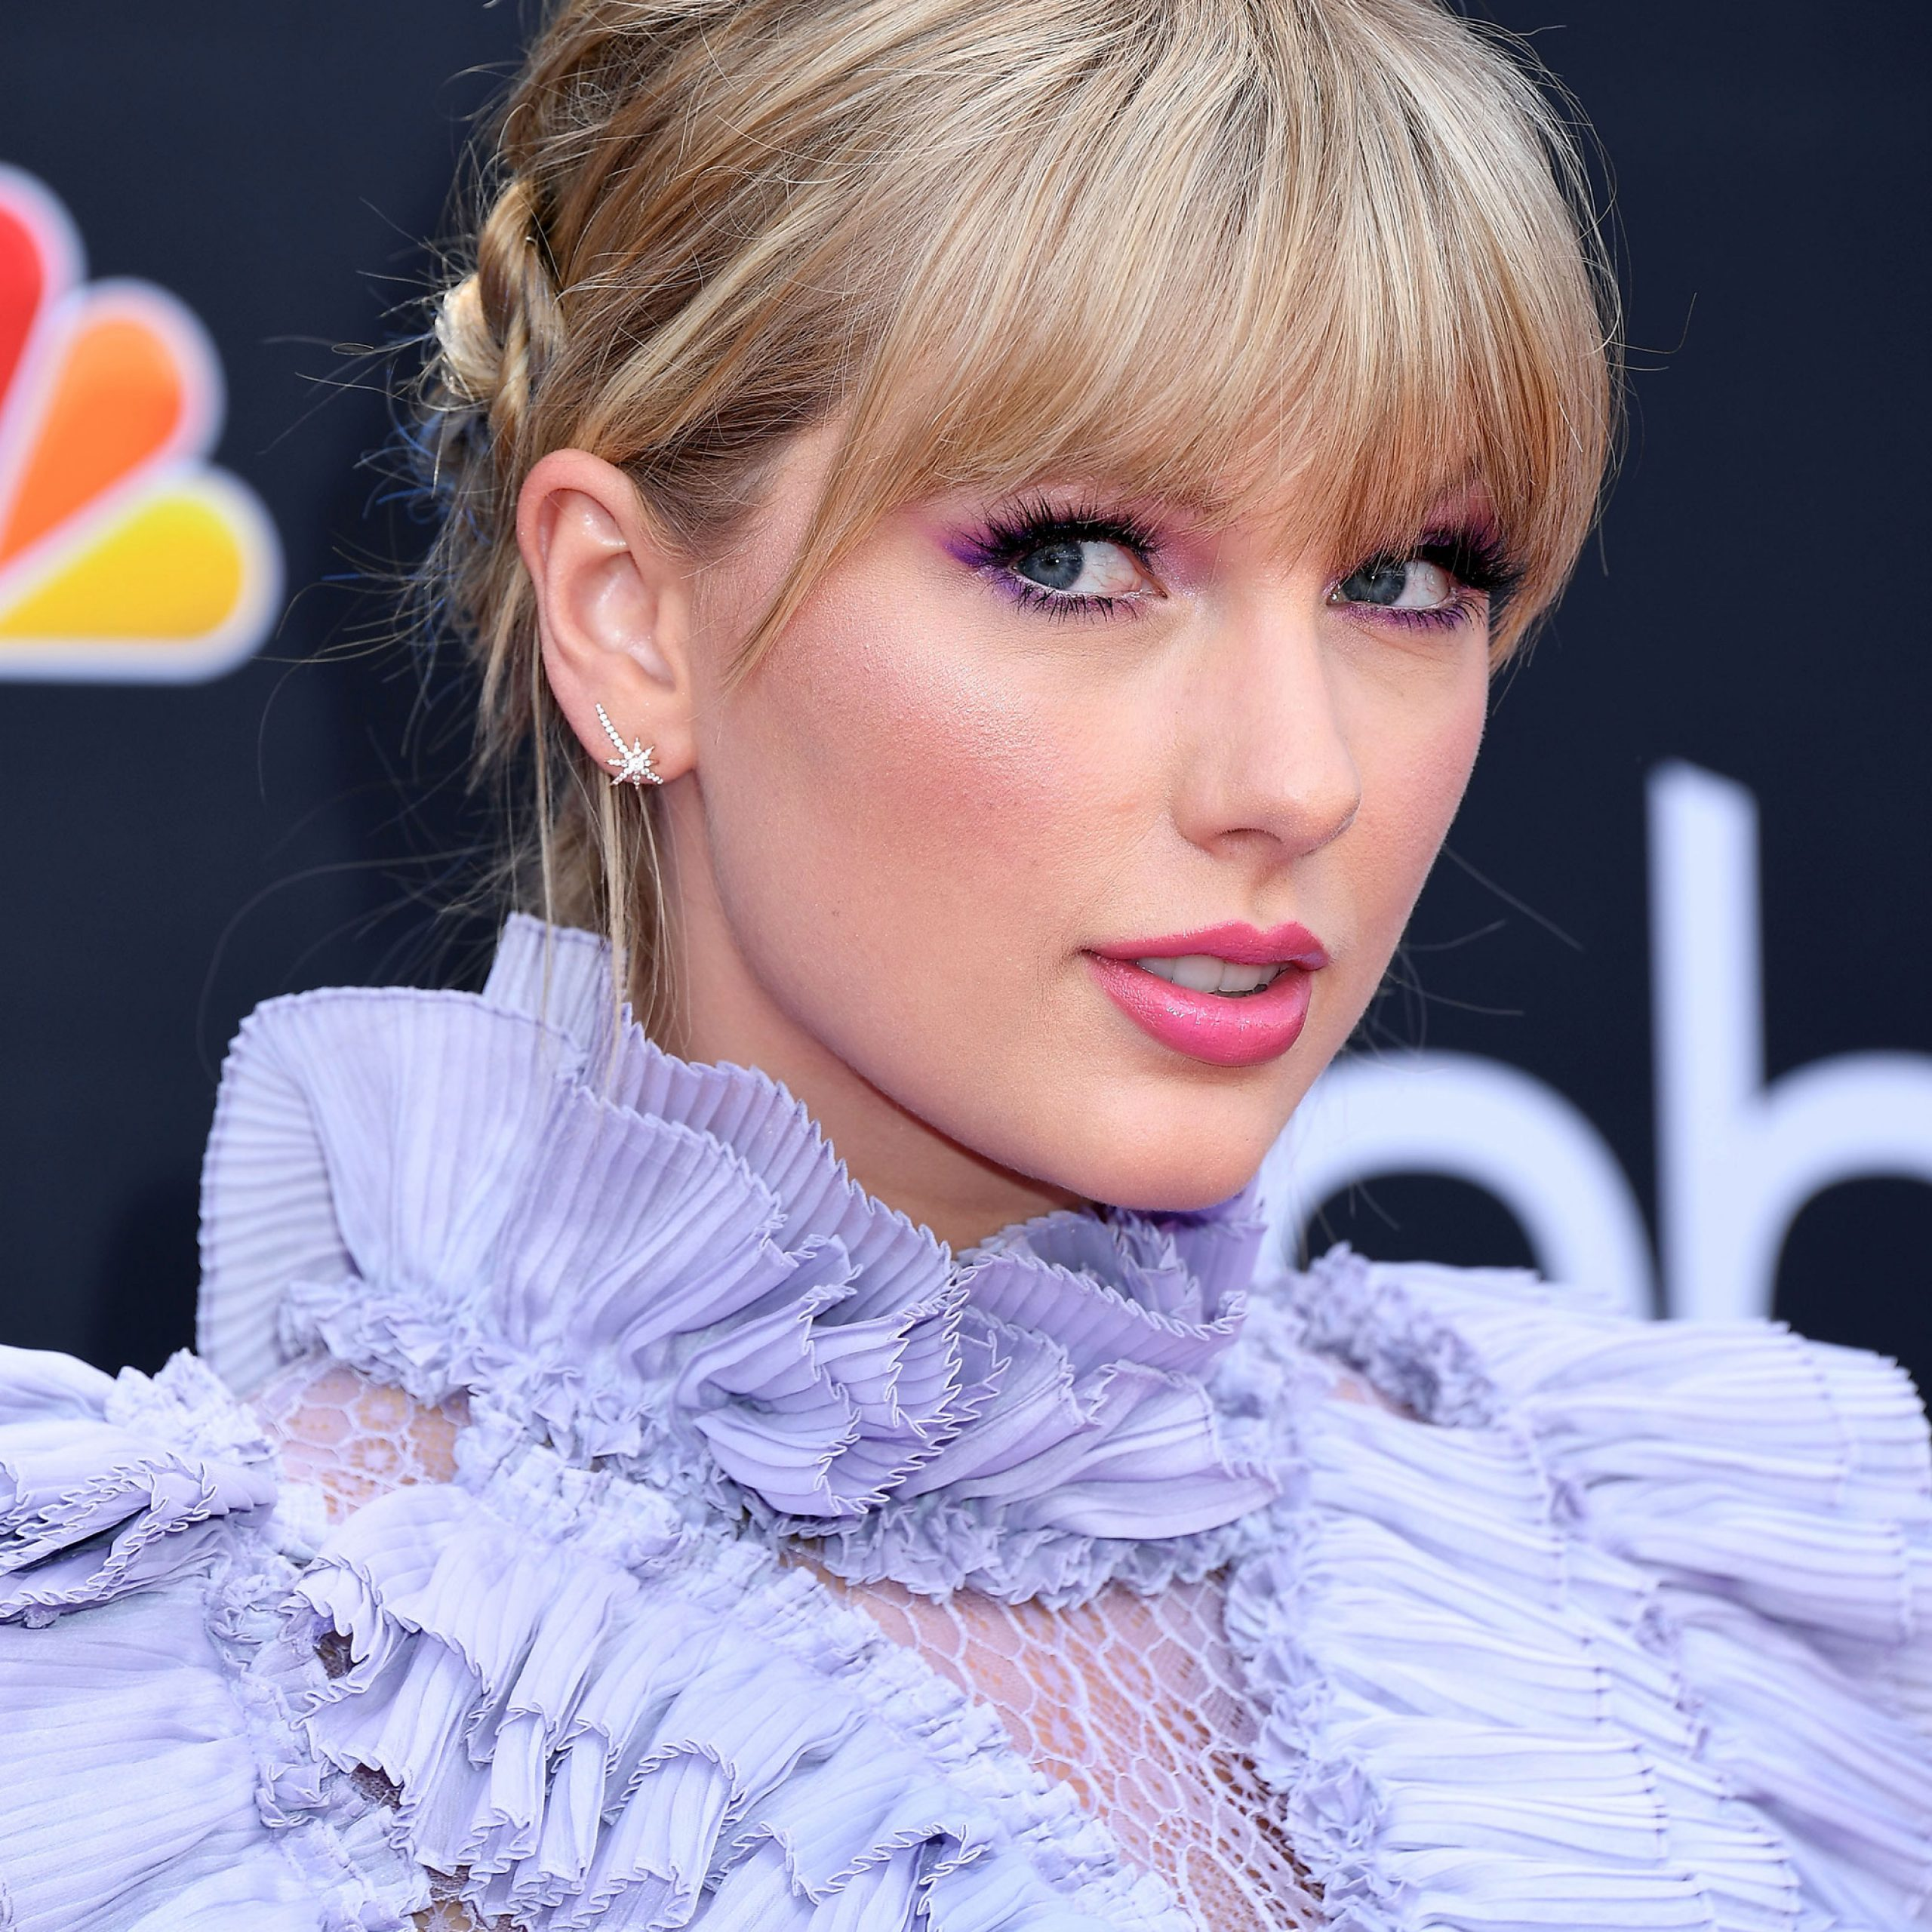 Famous Gorgeous Wavy White Shag Haircuts Inside Taylor Swift's Shag Haircut – Taylor Swift's Hairstyles (View 9 of 20)